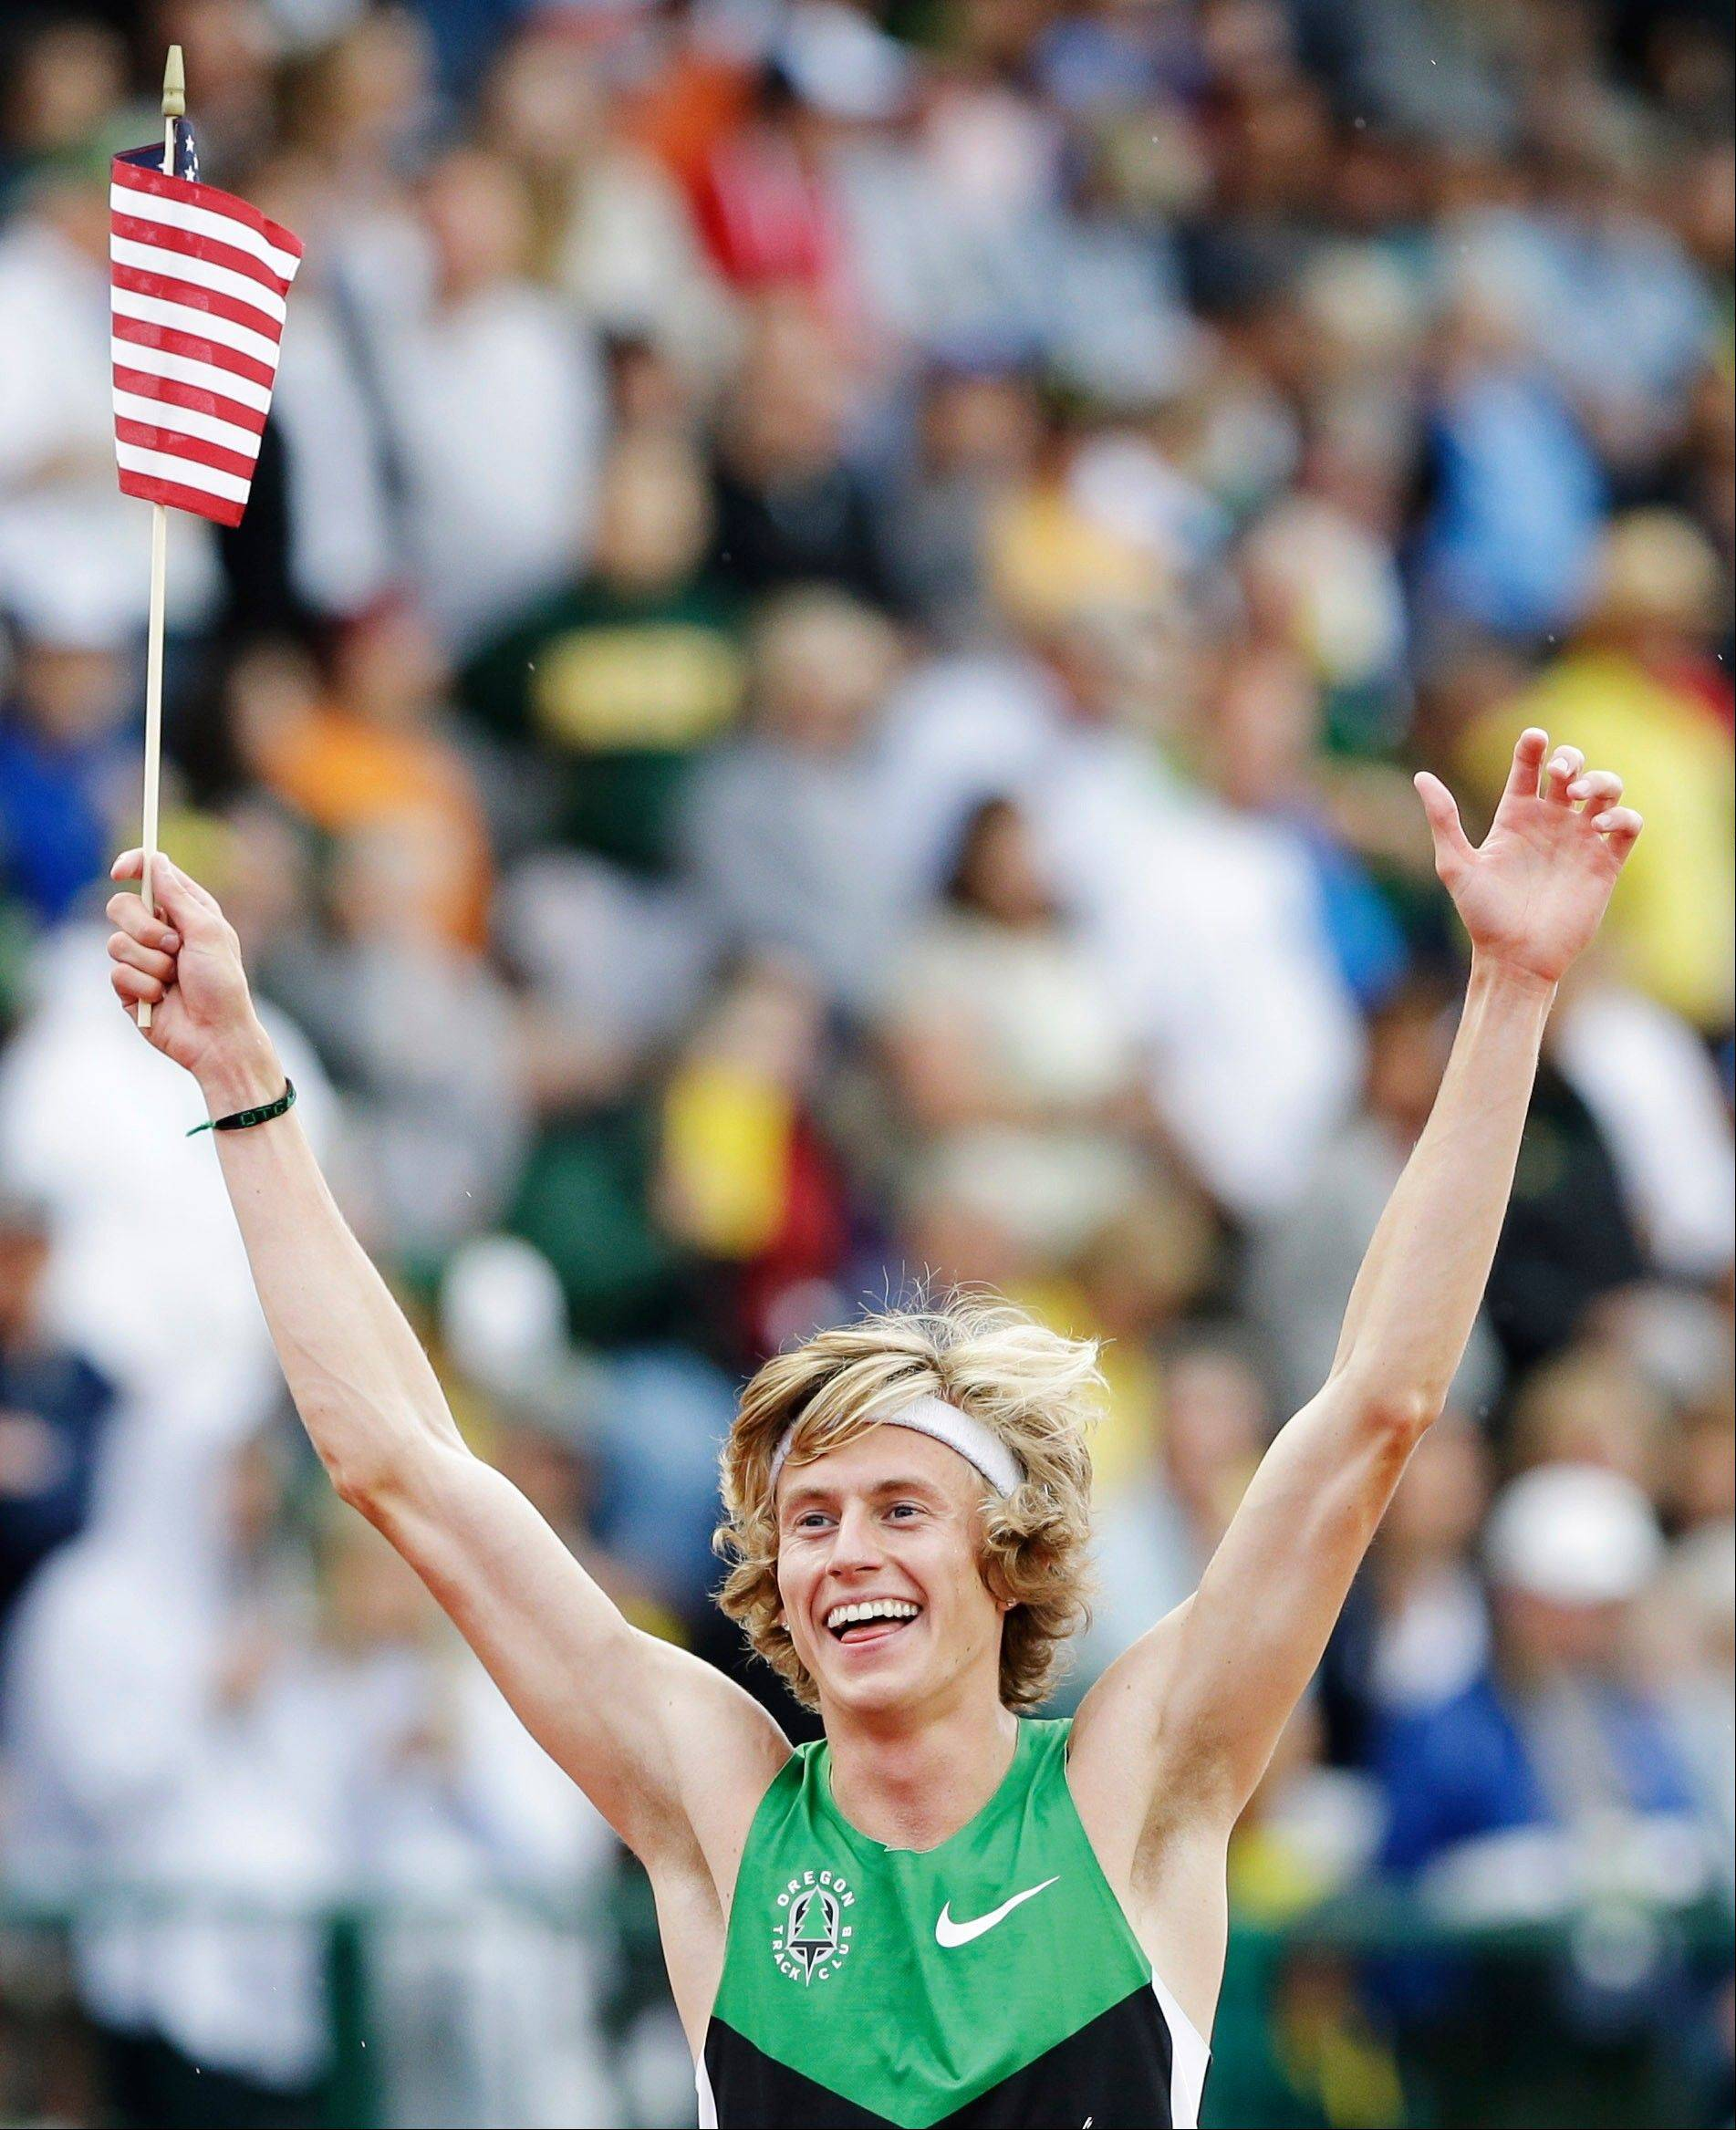 Associate PressEvan Jager celebrates after winning the men's 3,000-meter steeplechase at the U.S. Olympic Track and Field Trials Thursday. The Jacobs High School grad advanced to the Olympics but finished sixth in the event.